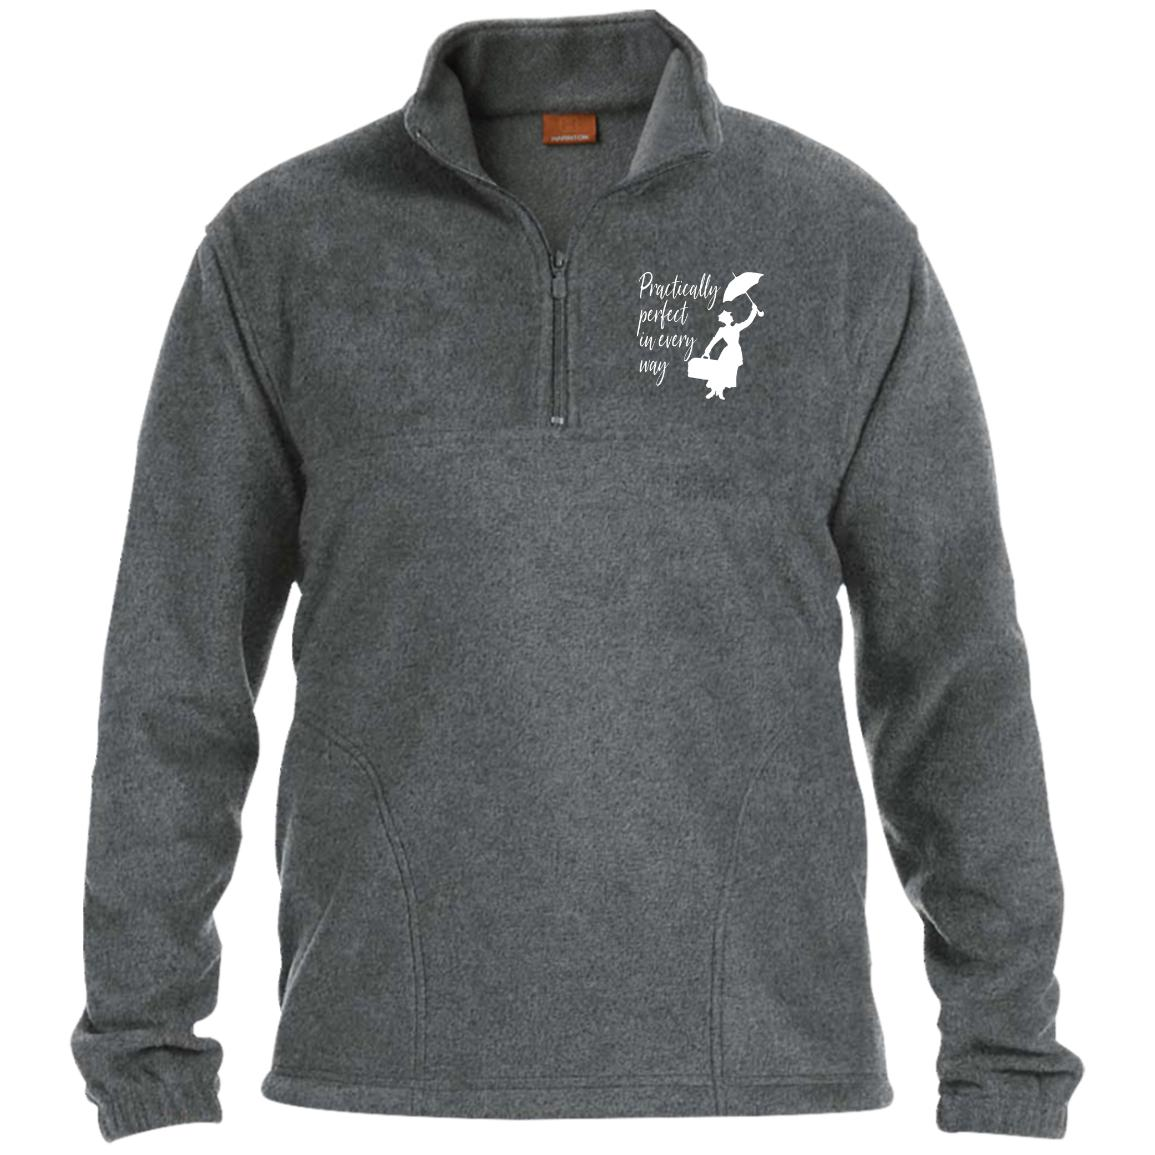 Mary Poppins Practically Perfect - 1/4 Zip Fleece Pullover